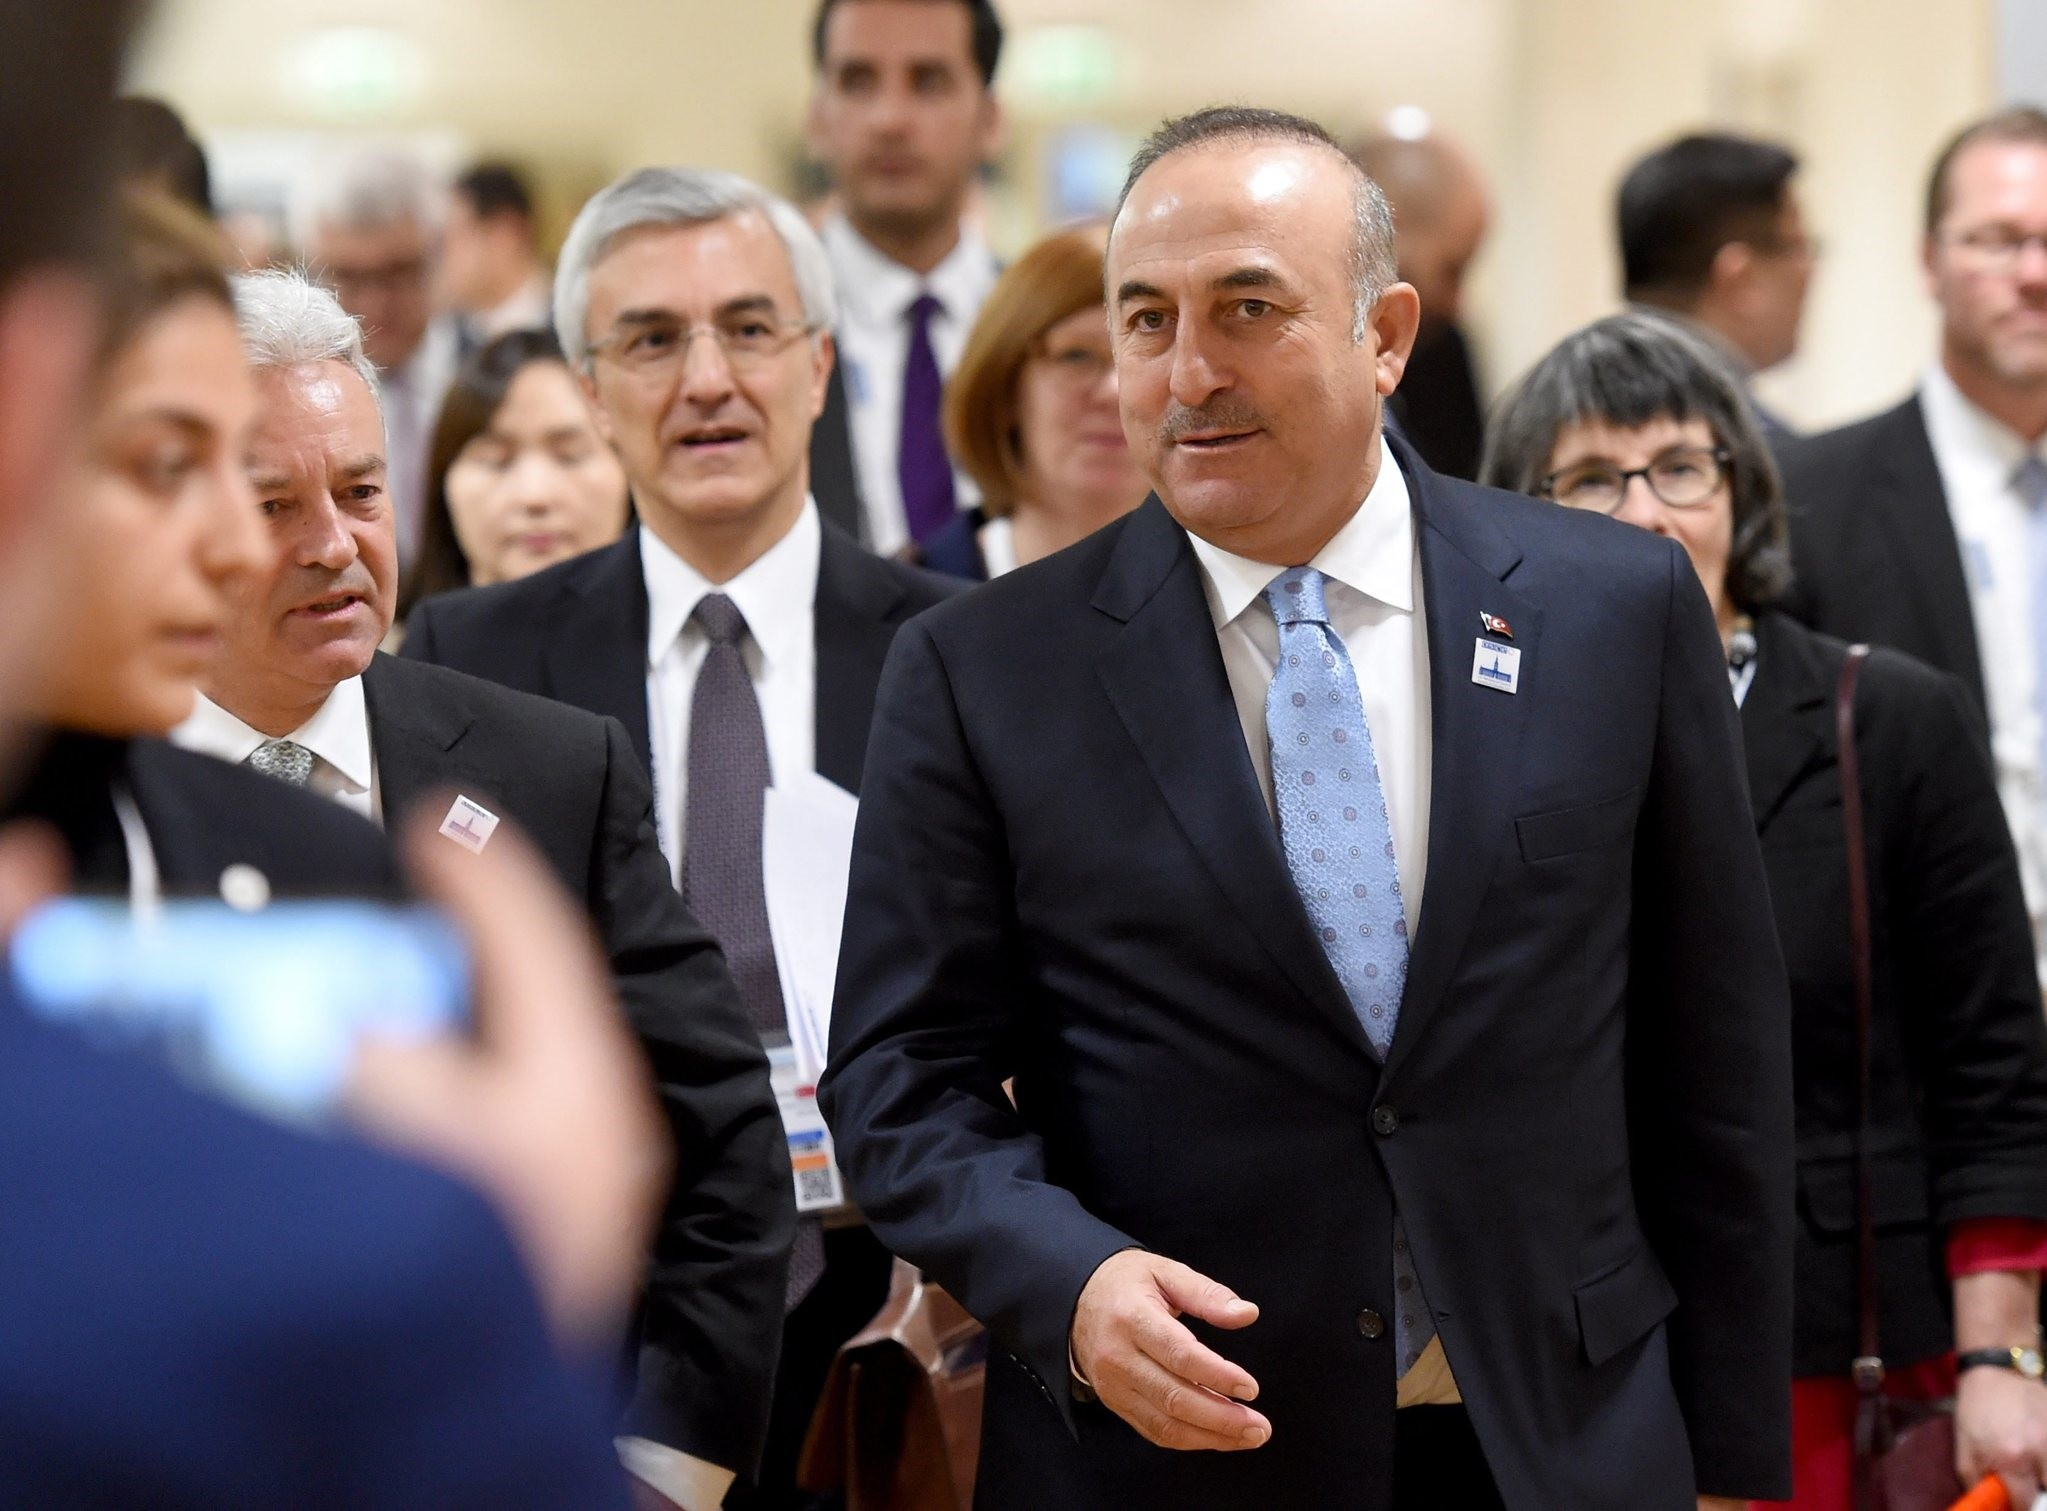 FM Mevlut Cavusoglu (C) and British Minister of State for Foreign and Commonwealth Affairs Alan Duncan (2-L) attend for the OSCE ministerial council in Hamburg. (EPA Photo)